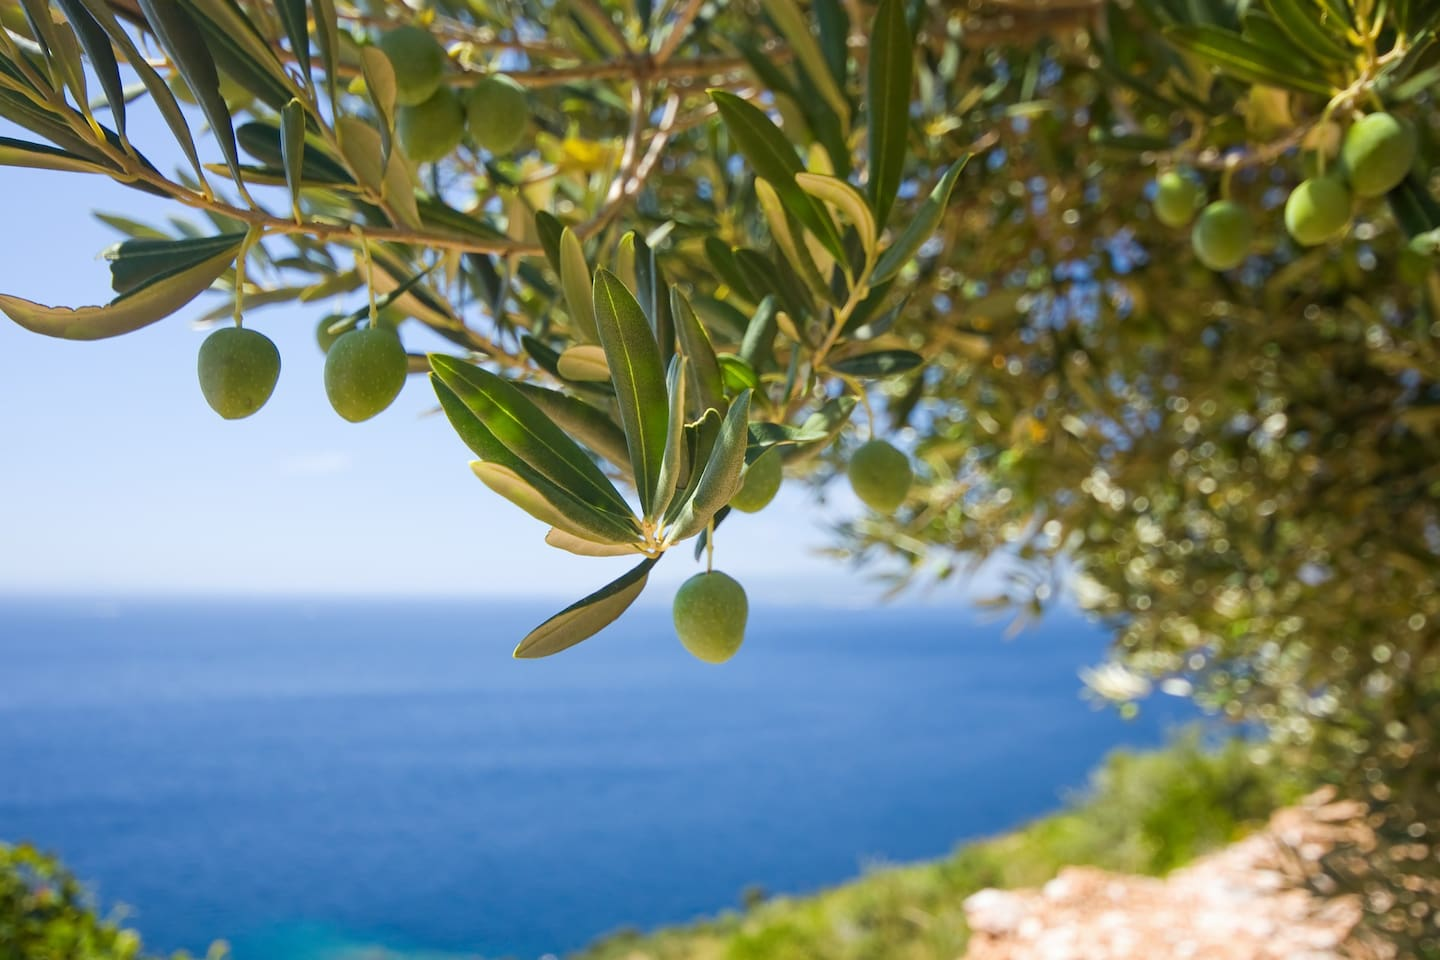 In the rolling hills full of olive and fruit trees, our villa is a quiet nature sanctuary.